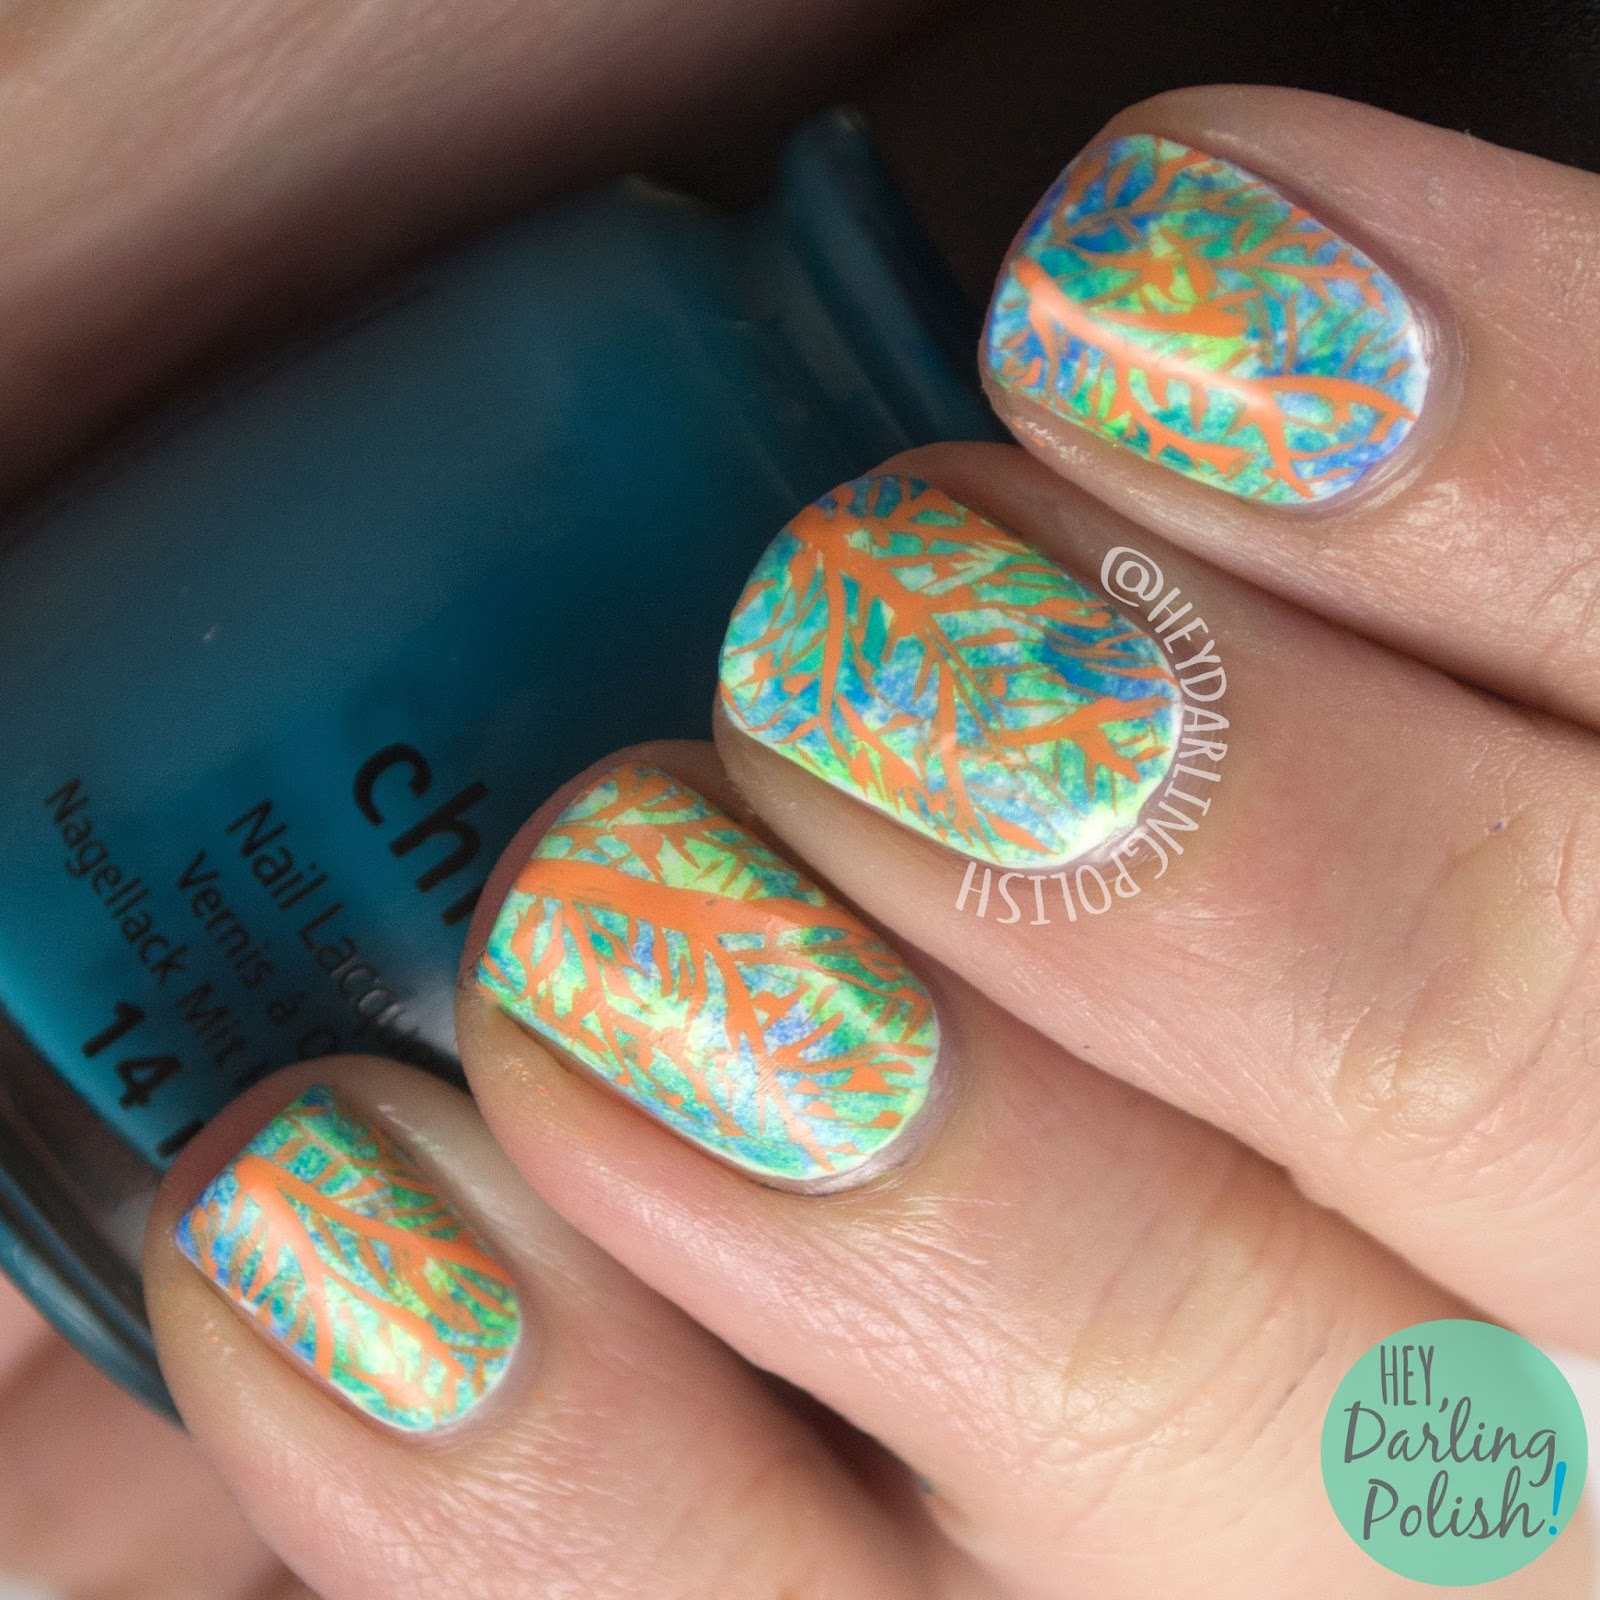 nails, nail art, nail polish, sea fans, oceanic, neon, 52 week challenge, hey darling polish, freehand, sponge